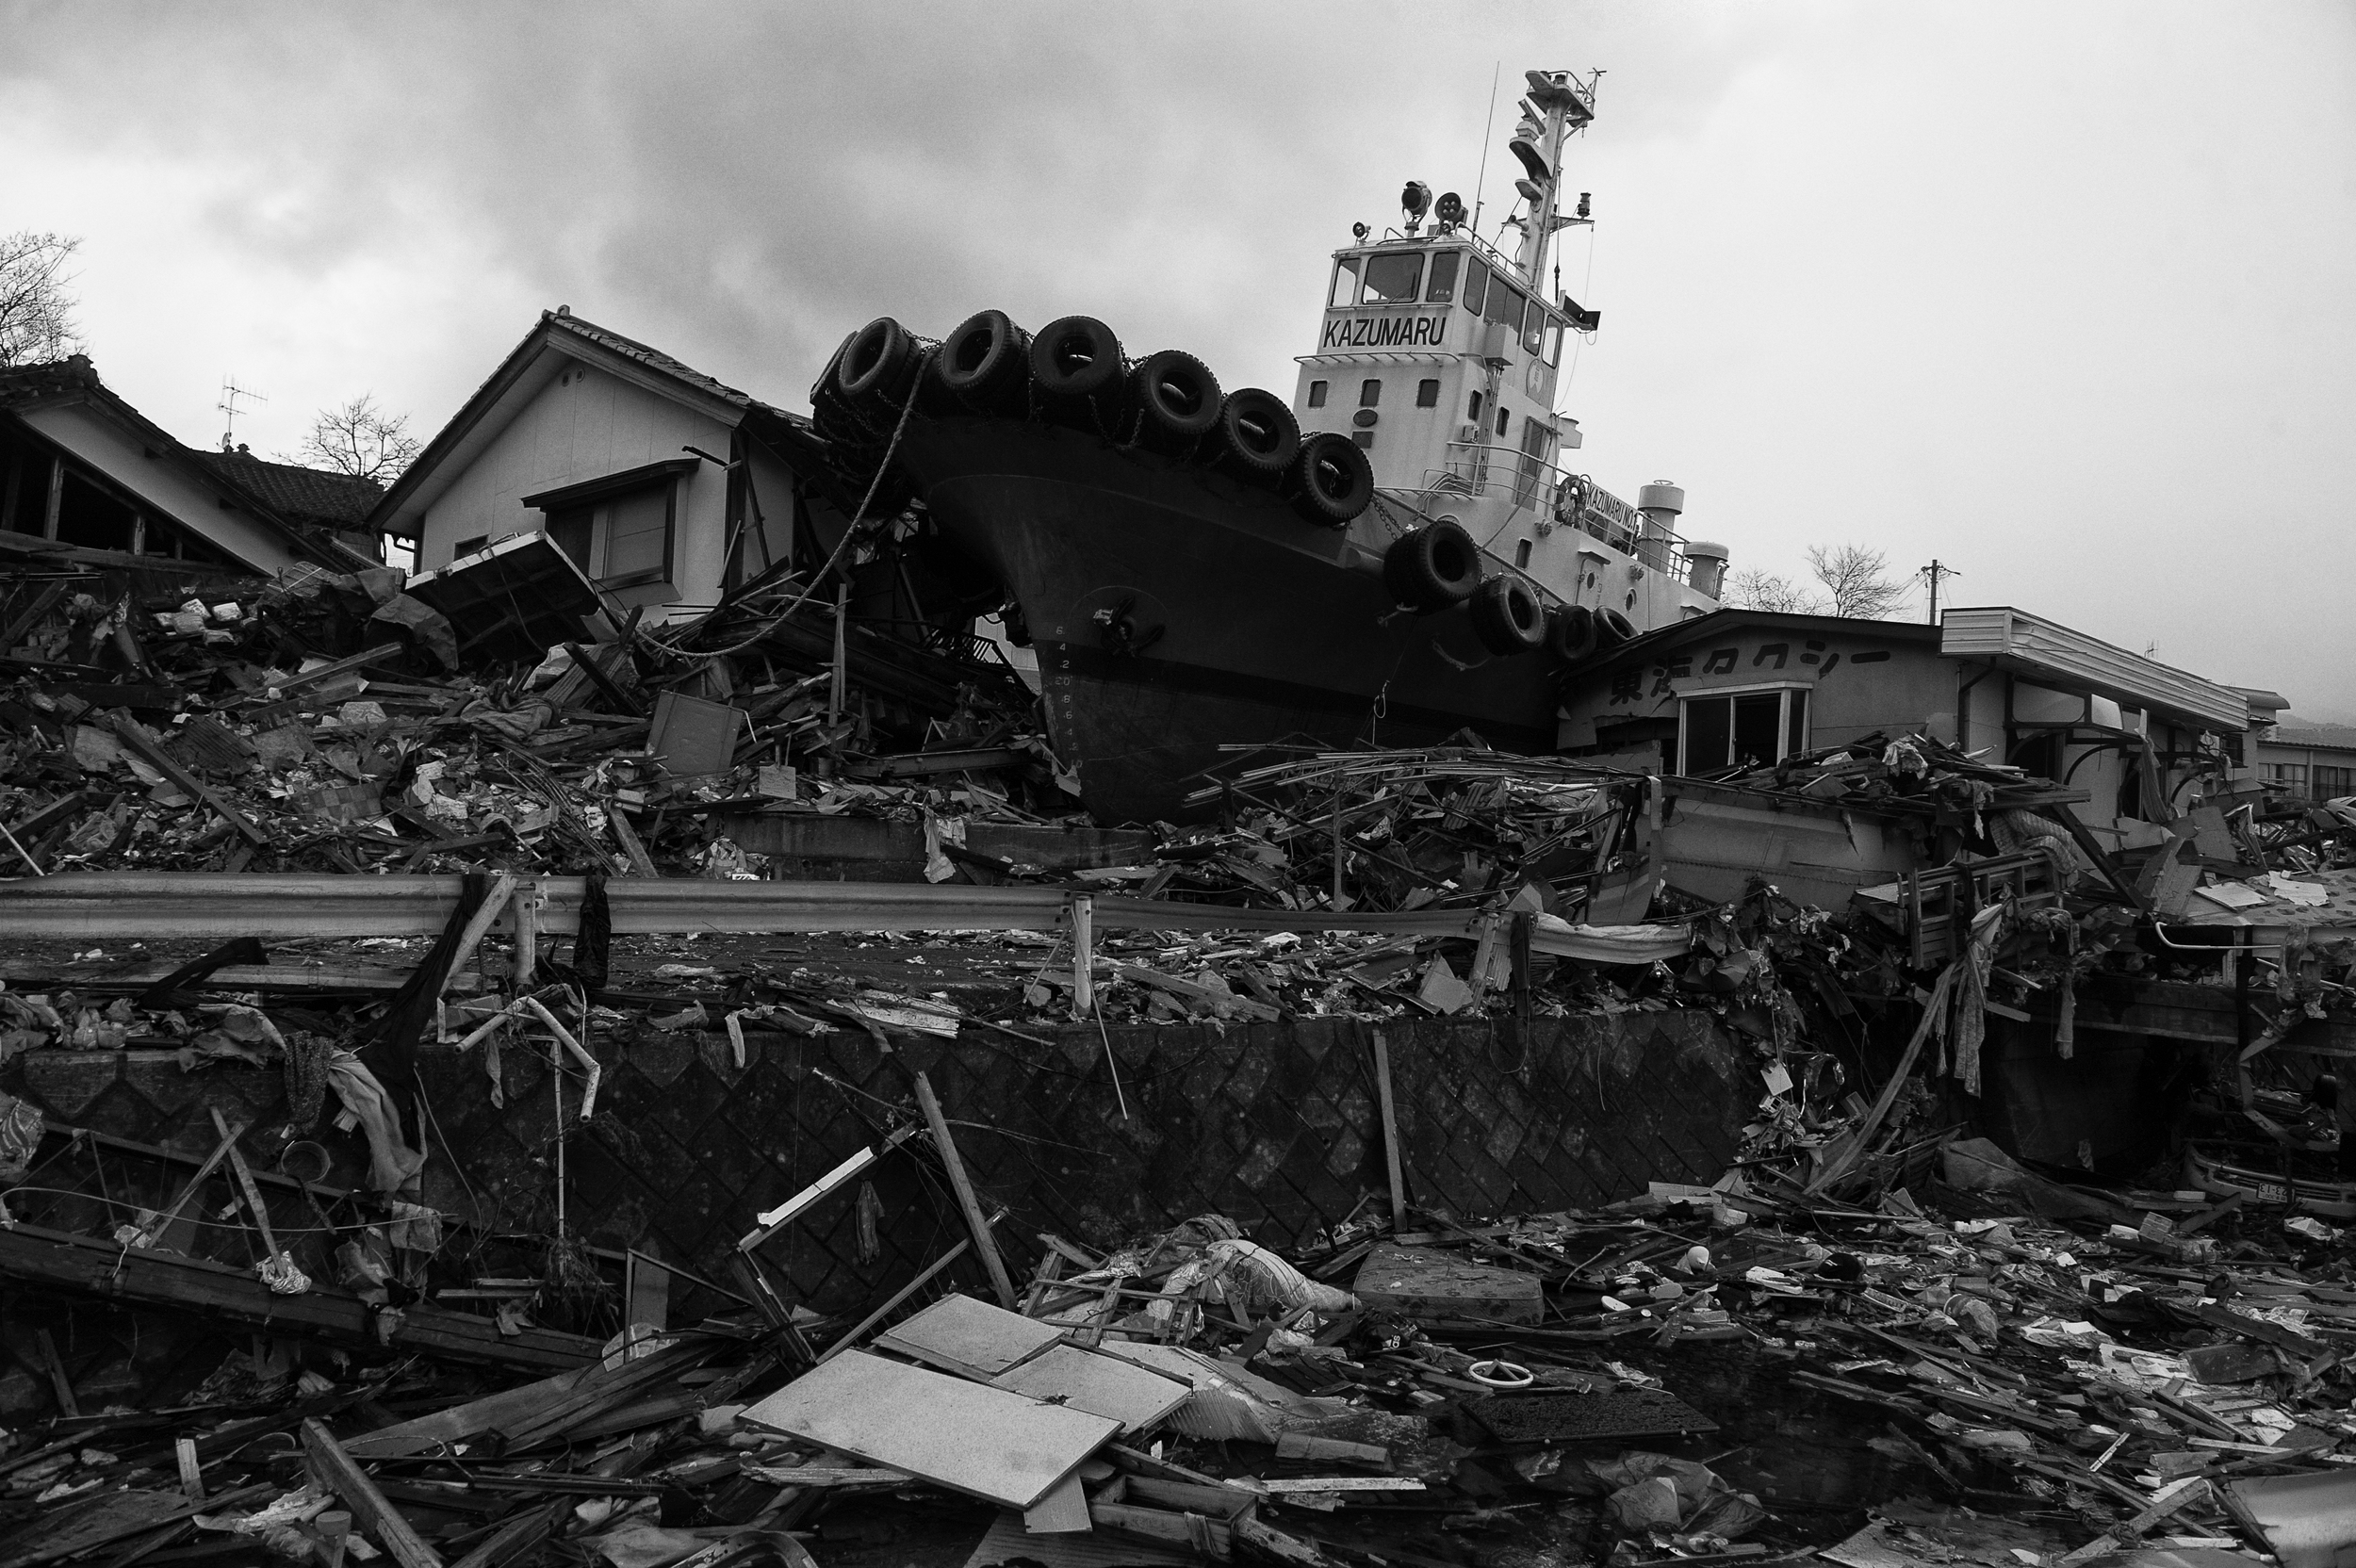 A destroyed tug boat smashed through a housing estate in Ofunato, Iwate, Japan, March 22, 2011. (Photo/ Mark Pearson) Almost all of the 29,000 fishing boats in Miyagi, Iwate, and Fukushima prefectures were rendered unusable after the 2011 Tōhoku earthquake and tsunami struck.12,000 fishing boats in Miyagi prefecture were destroyed or damaged, and at least 440 fishermen were killed or missing.